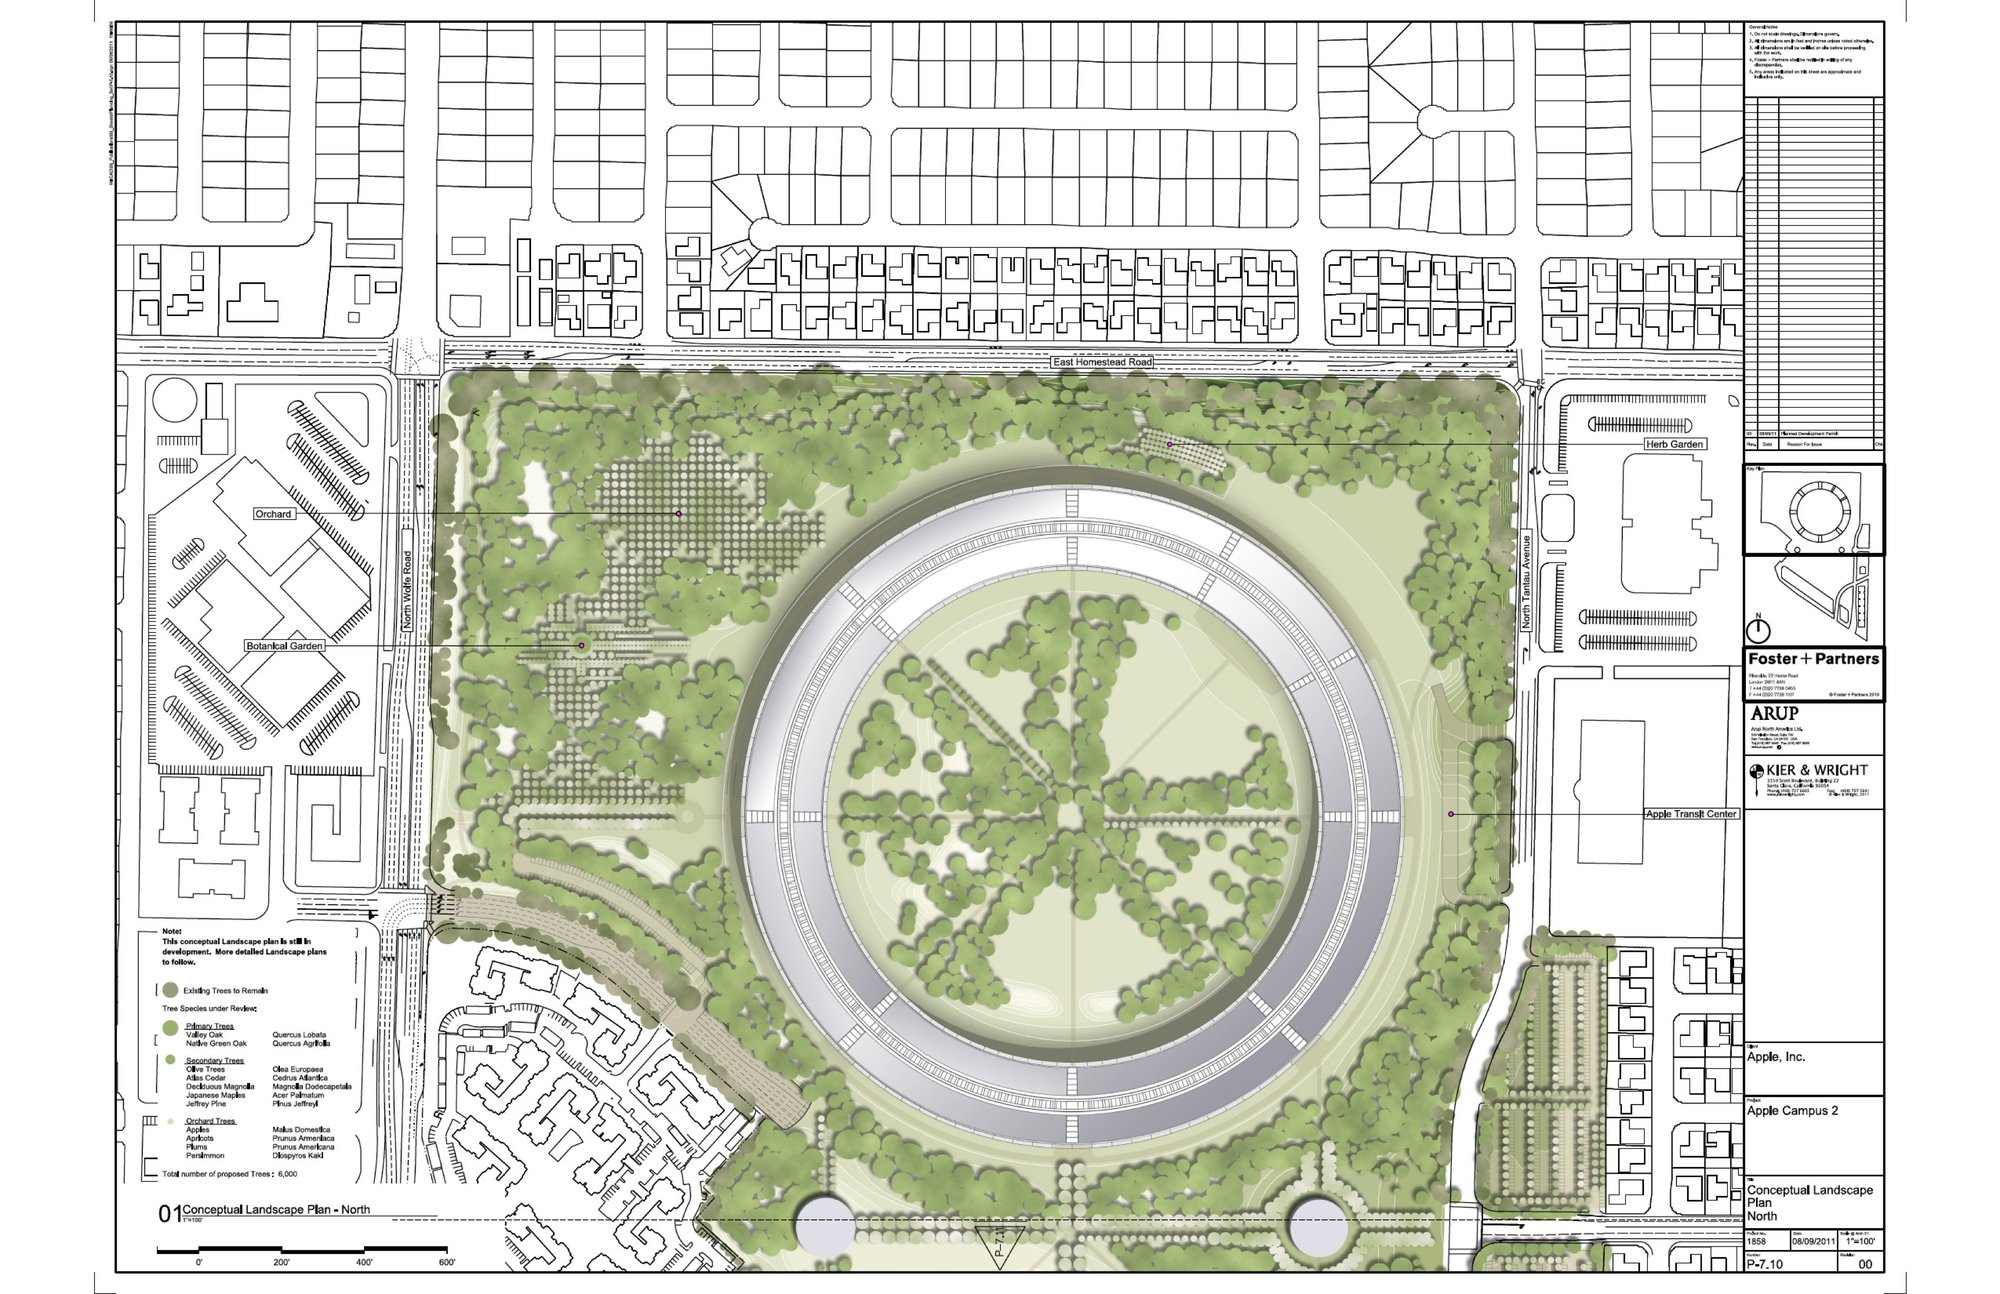 M s sobre el nuevo campus de apple por foster partners for Plan de arquitectura